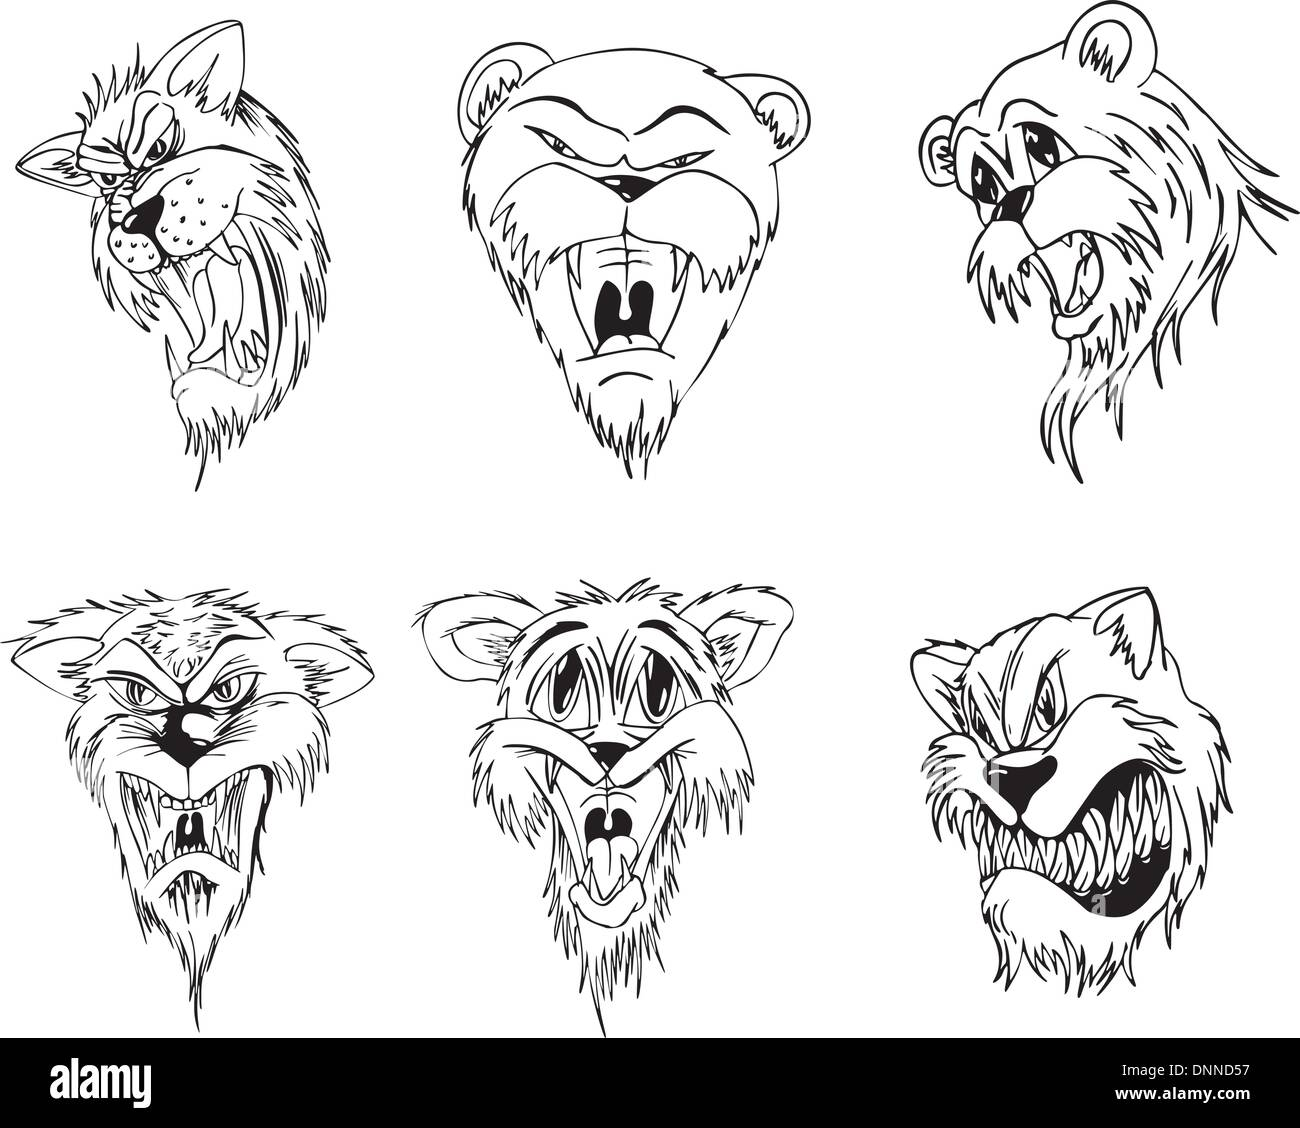 Aggressive animal heads. Set of black and white vector tattoo designs. - Stock Vector